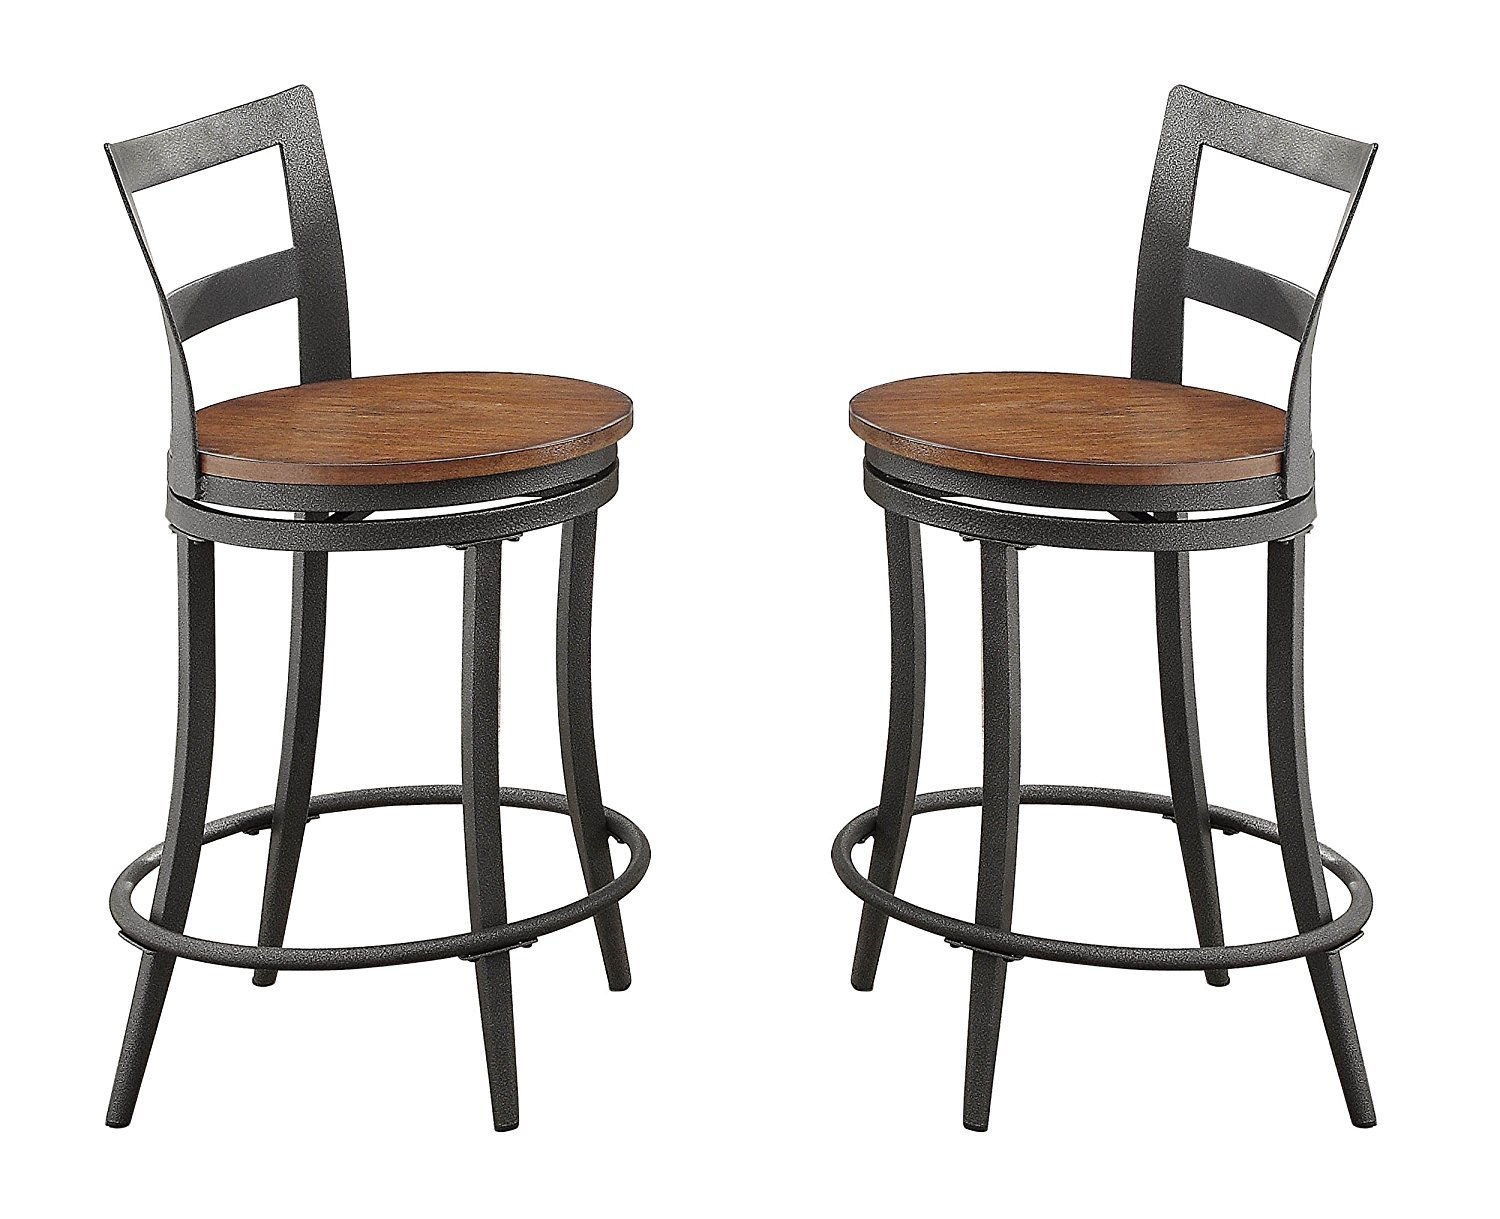 Gray and Brown Benzara BM176406 Wooden Swivel Bar Chair with Foot Rest Set of Two